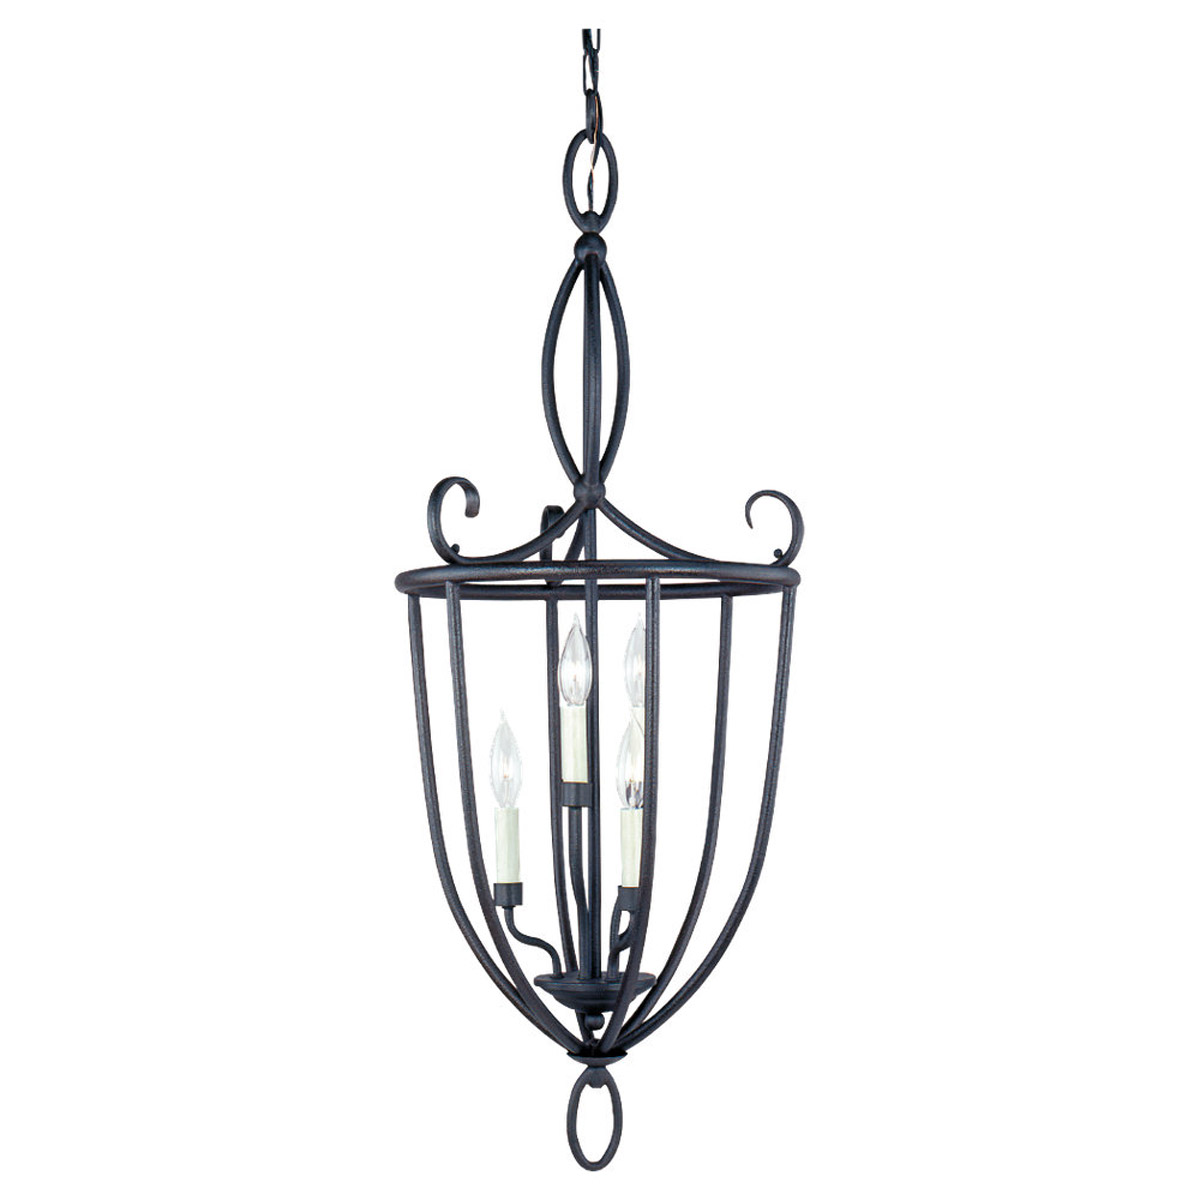 Sea Gull Lighting Pemberton 6 Light Foyer Pendant in Peppercorn 51075-799 photo